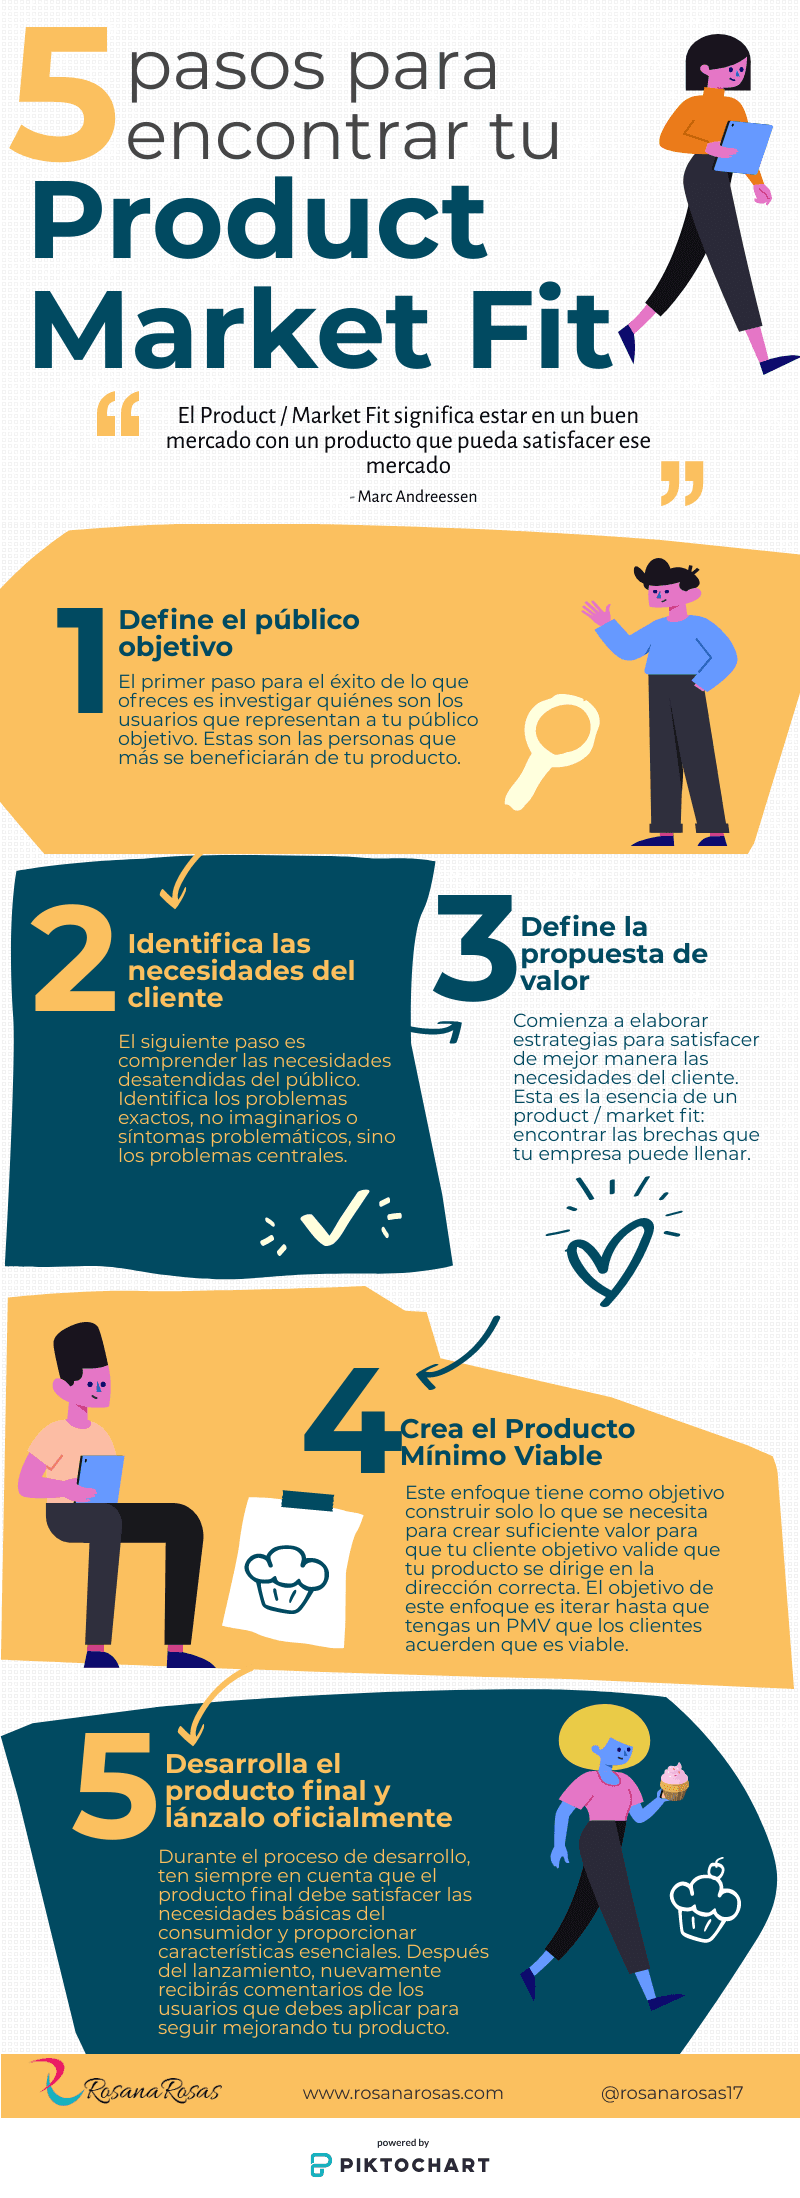 Pasos para encontrar product market fit